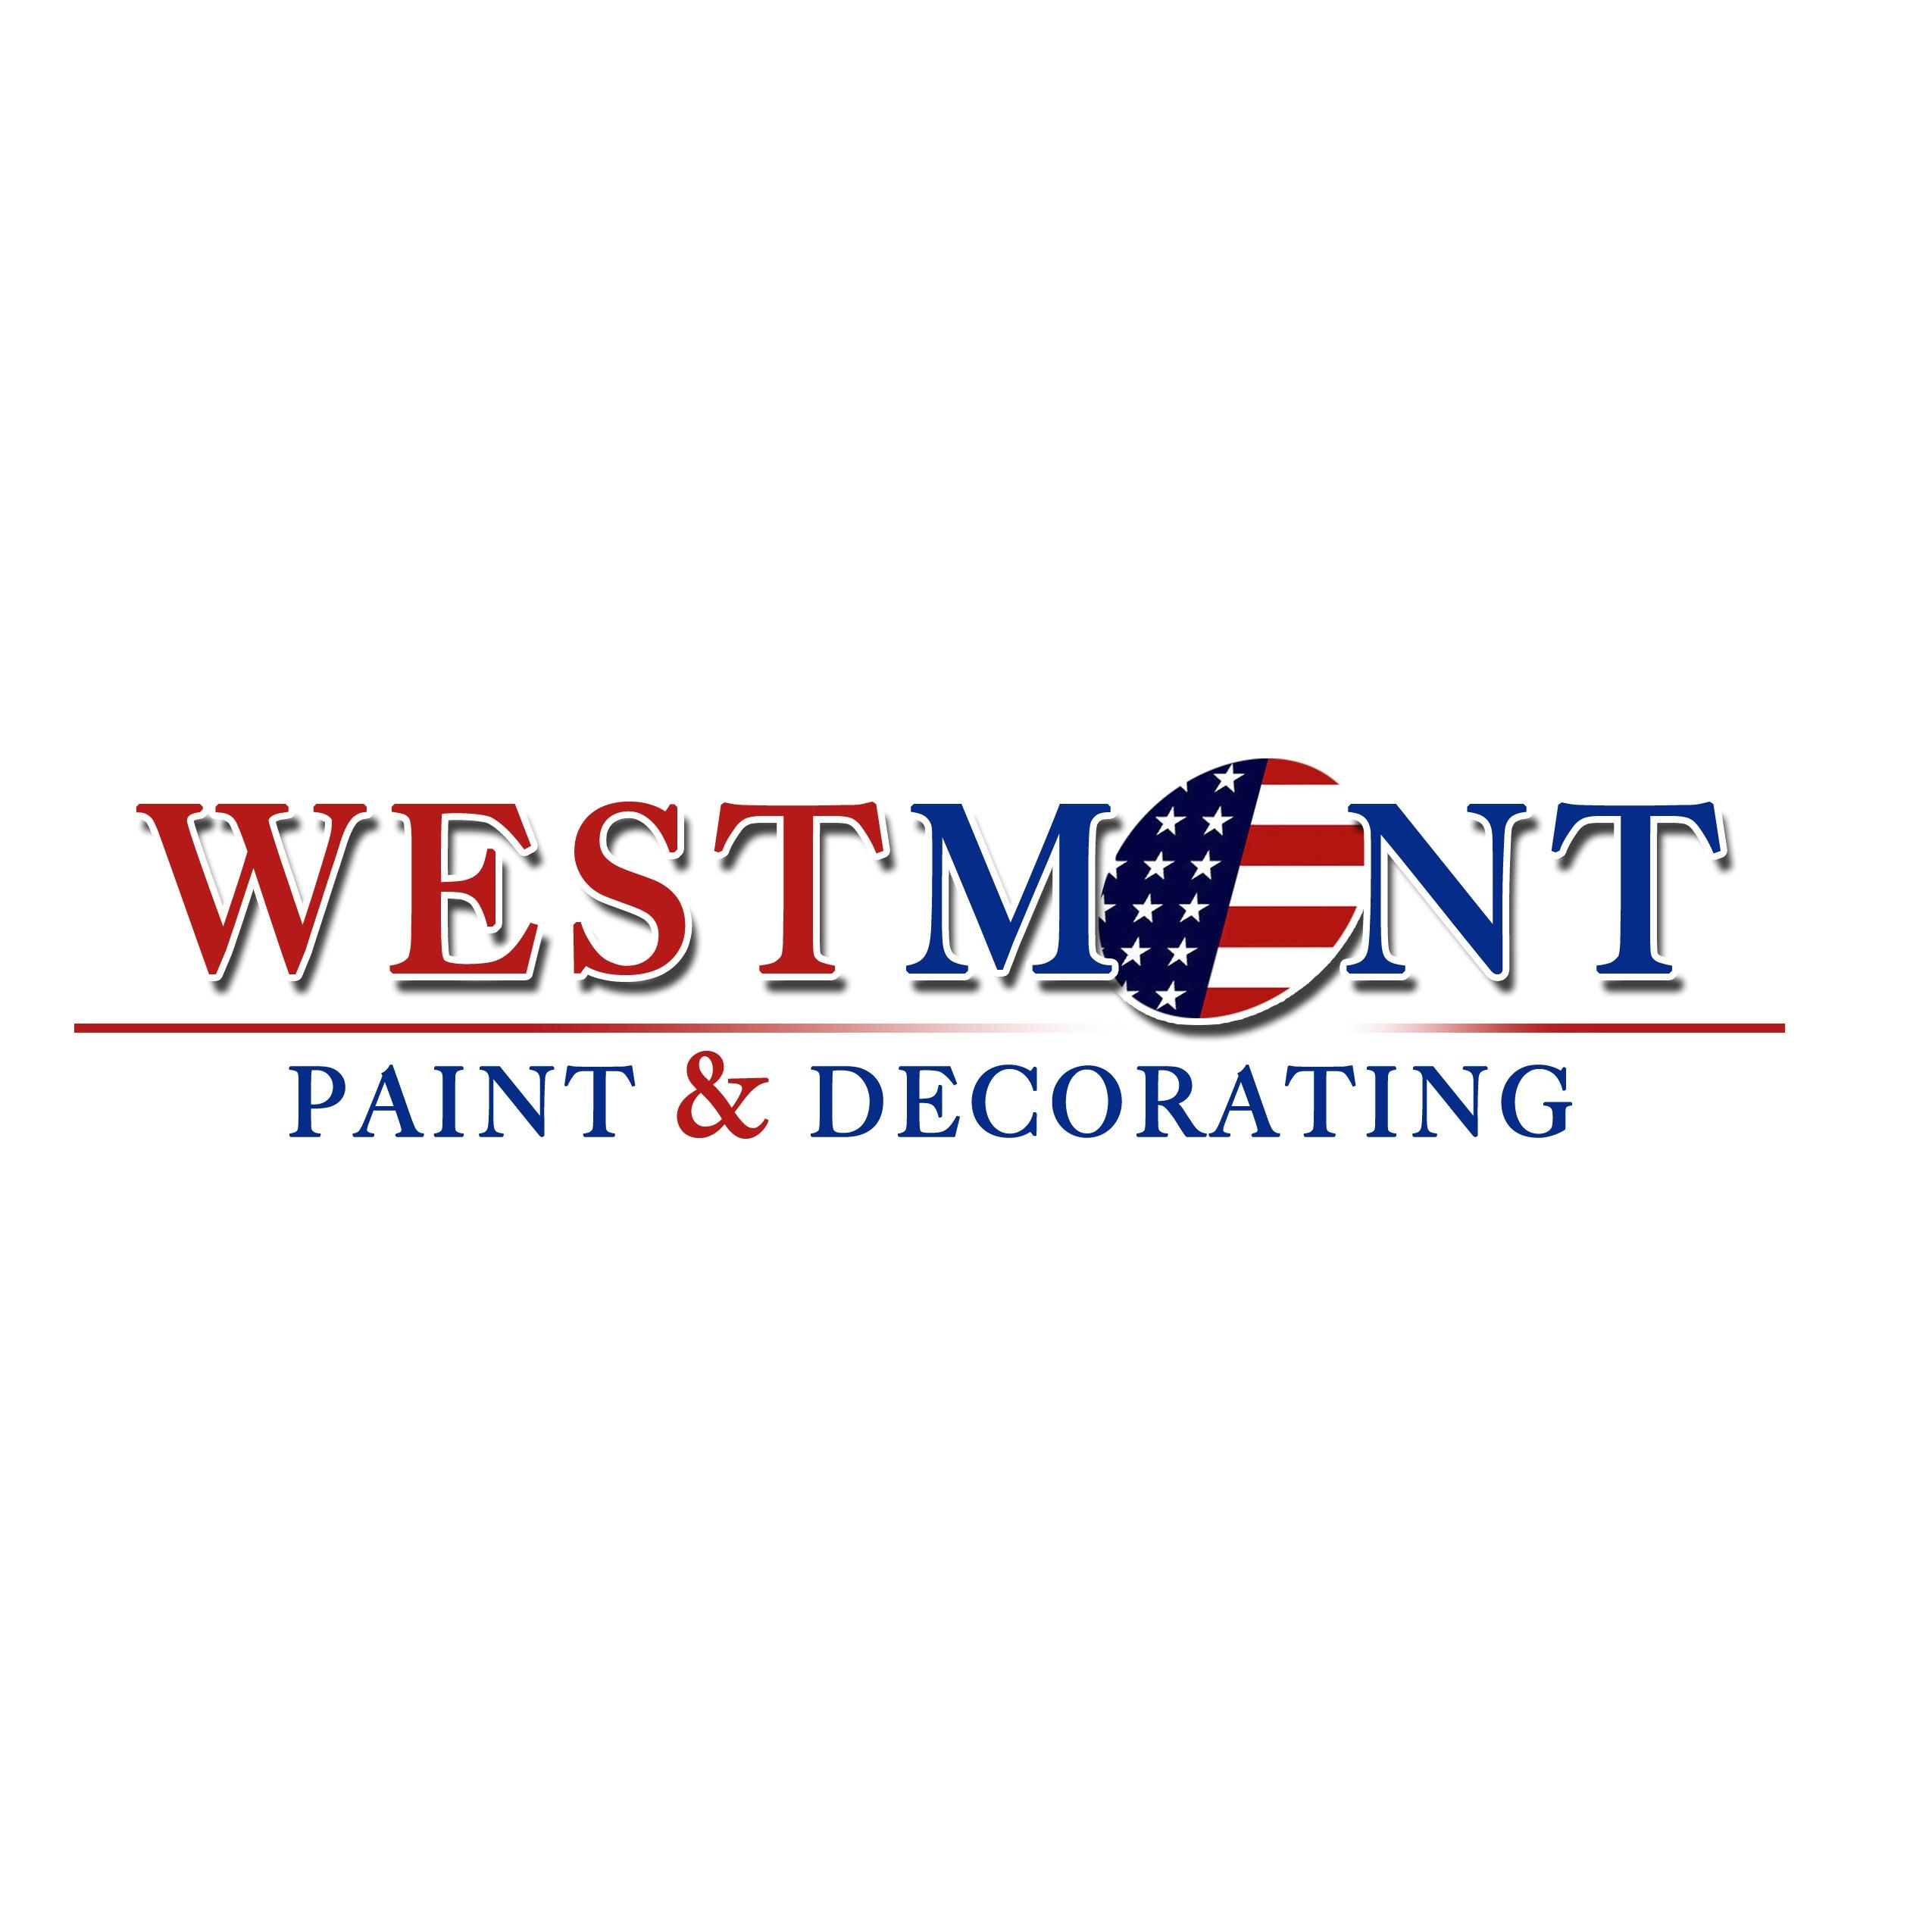 Westmont Paint Decorating Coupons Near Me In Westmont